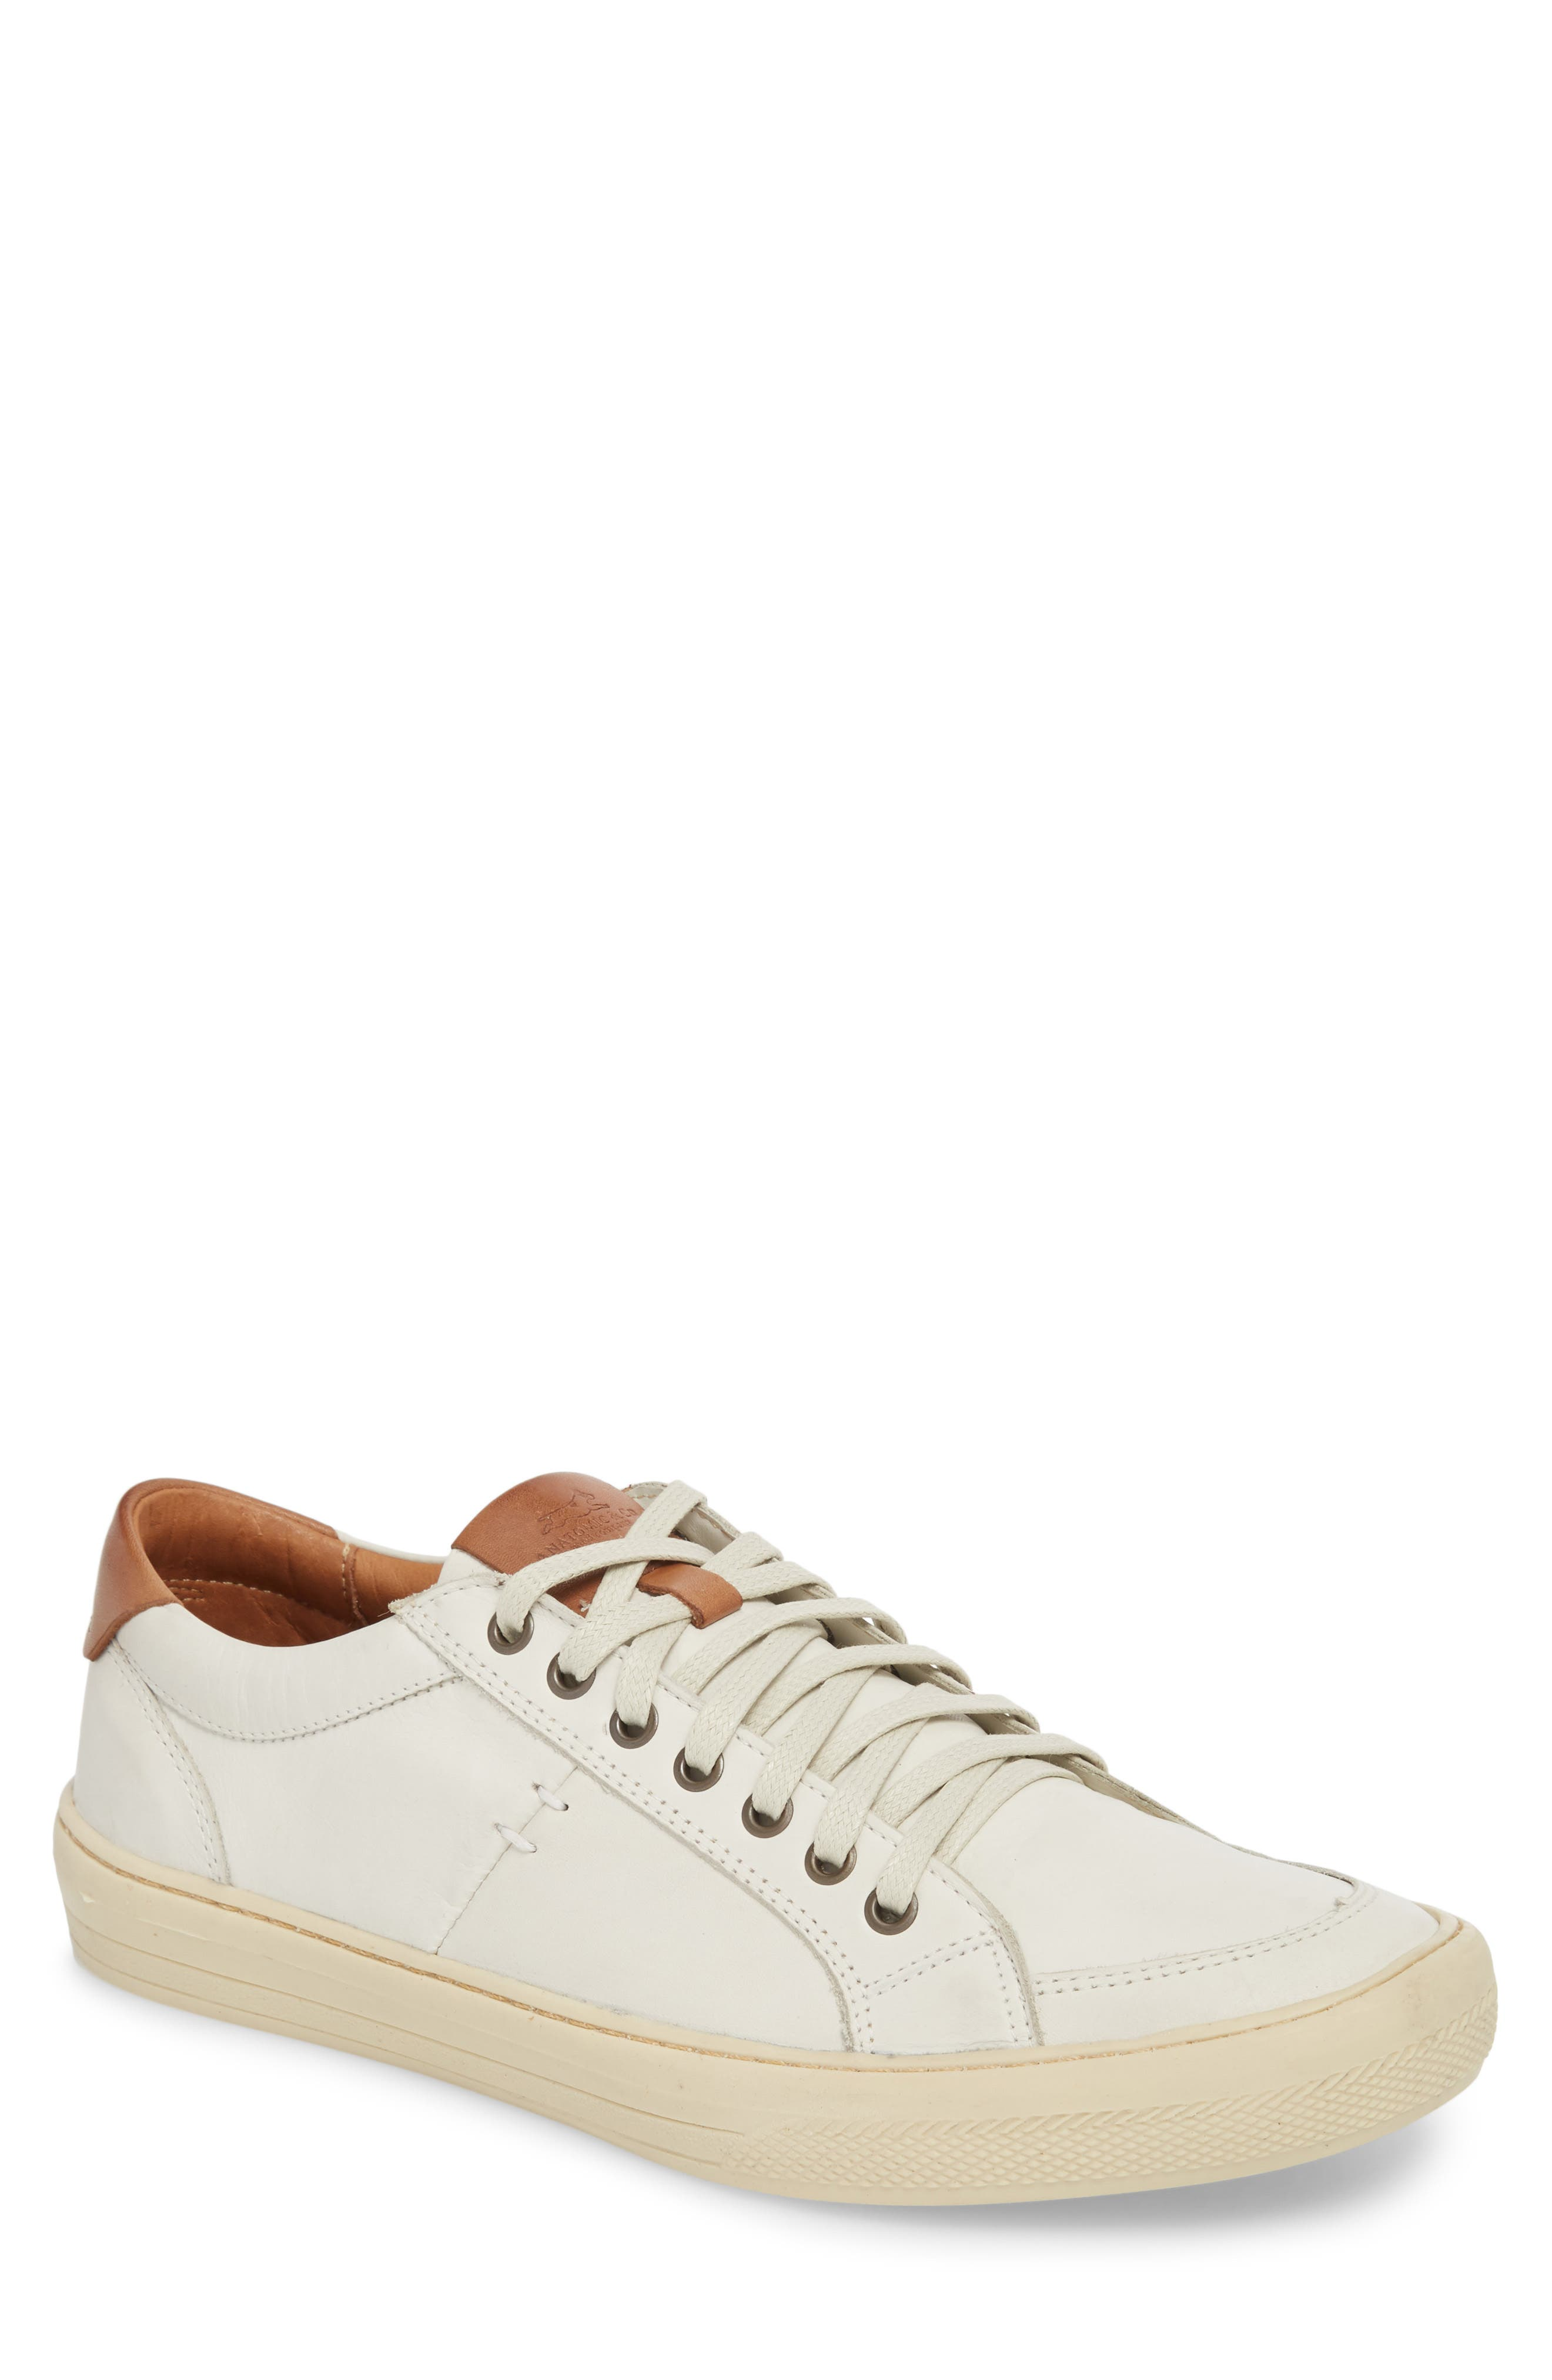 Bilac Low Top Sneaker,                             Main thumbnail 1, color,                             100